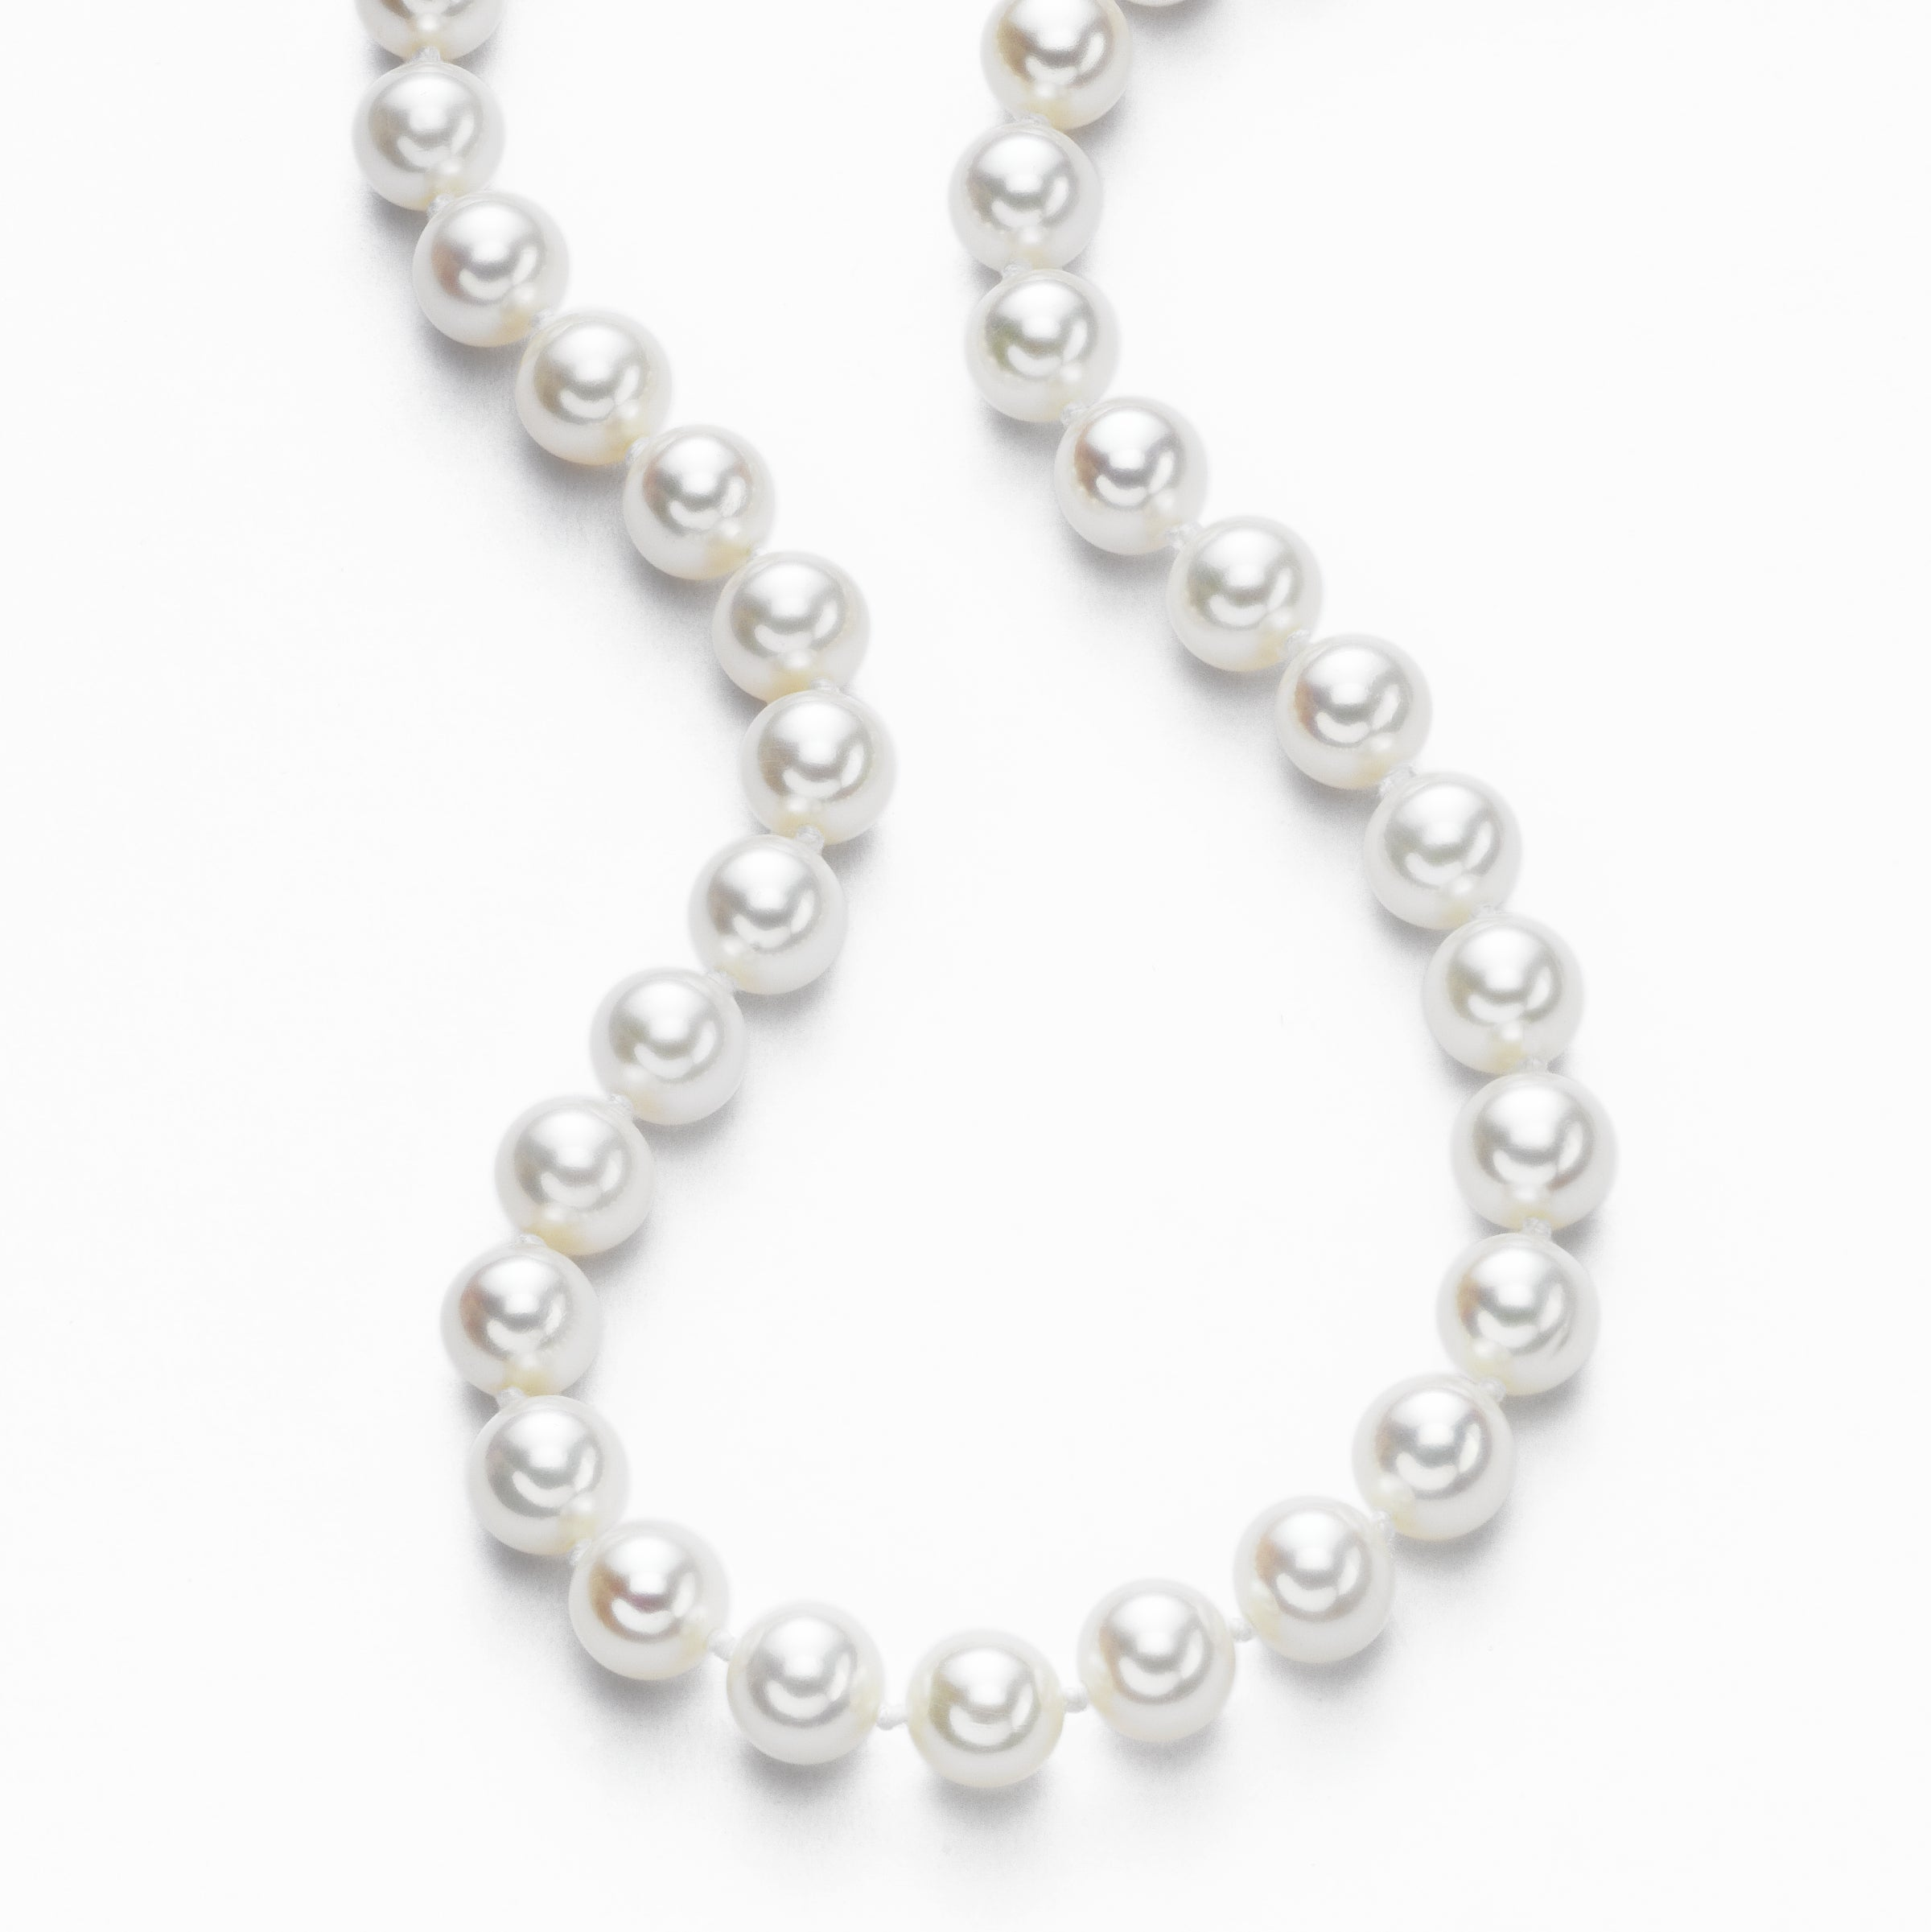 Freshwater Pearl Necklace, 7.5 x 7 MM, 14K White Gold